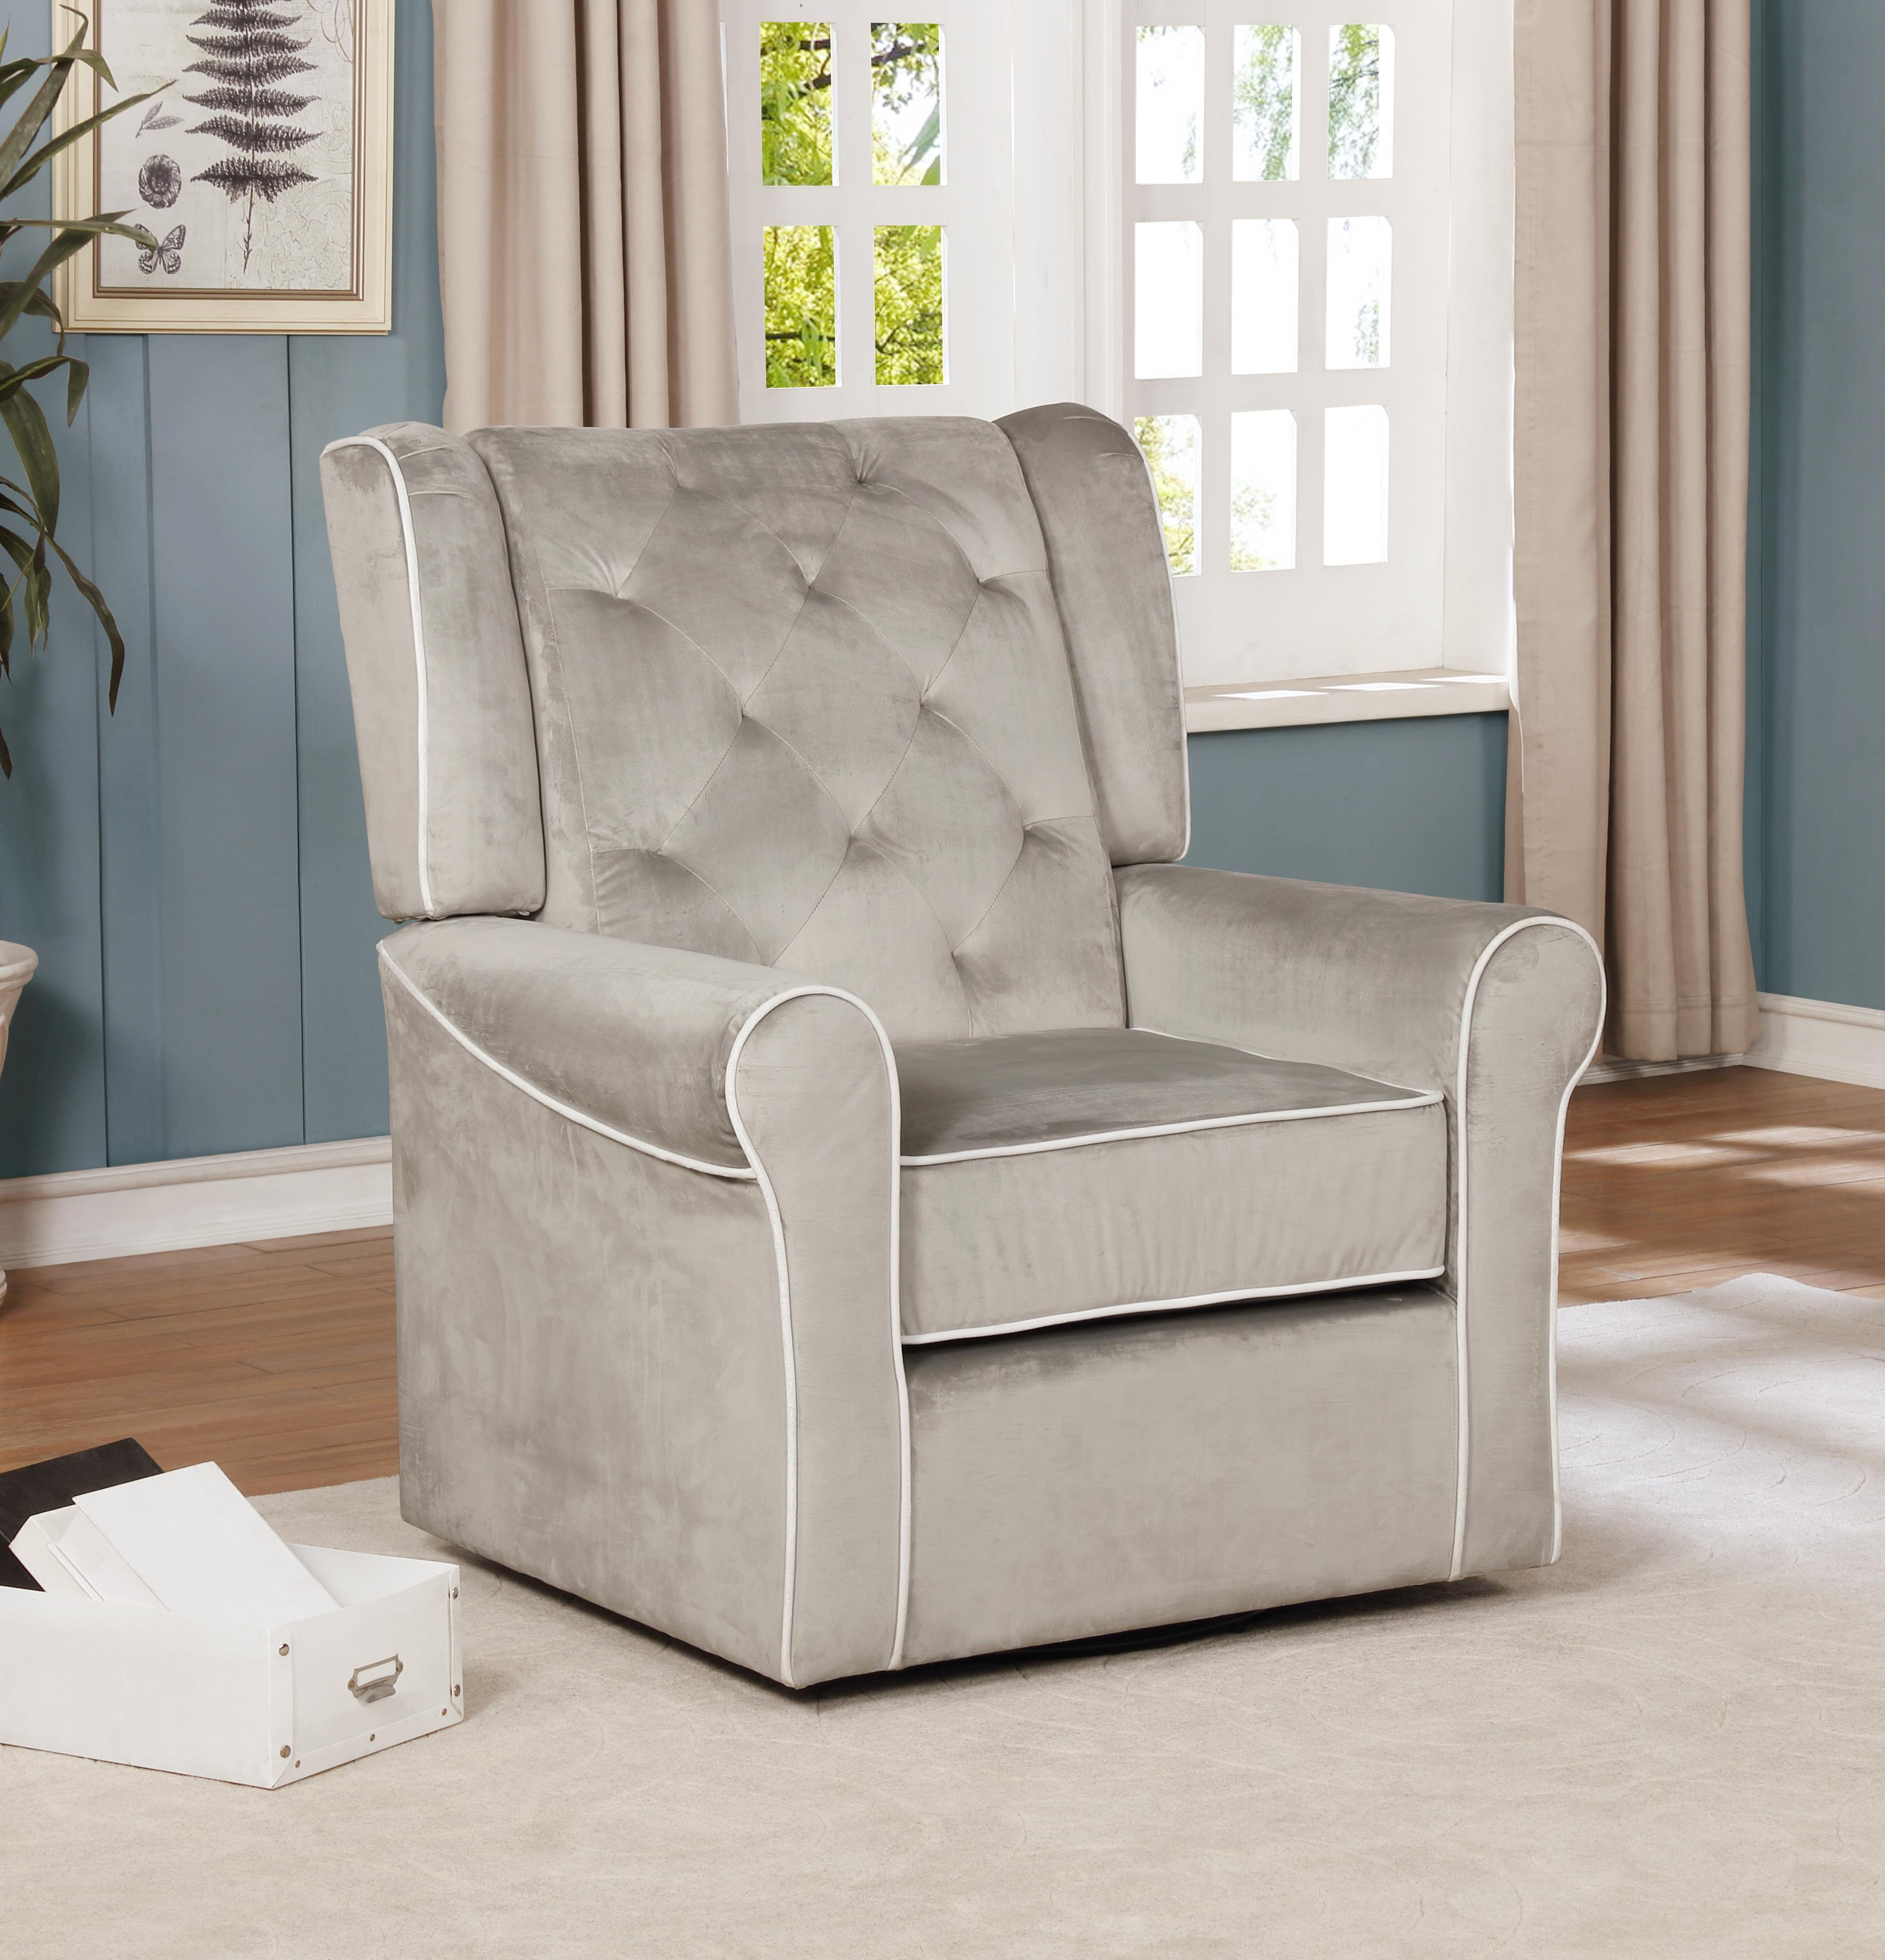 Sophia Swivel Glider-Color:Gray,Fabric:Microfiber